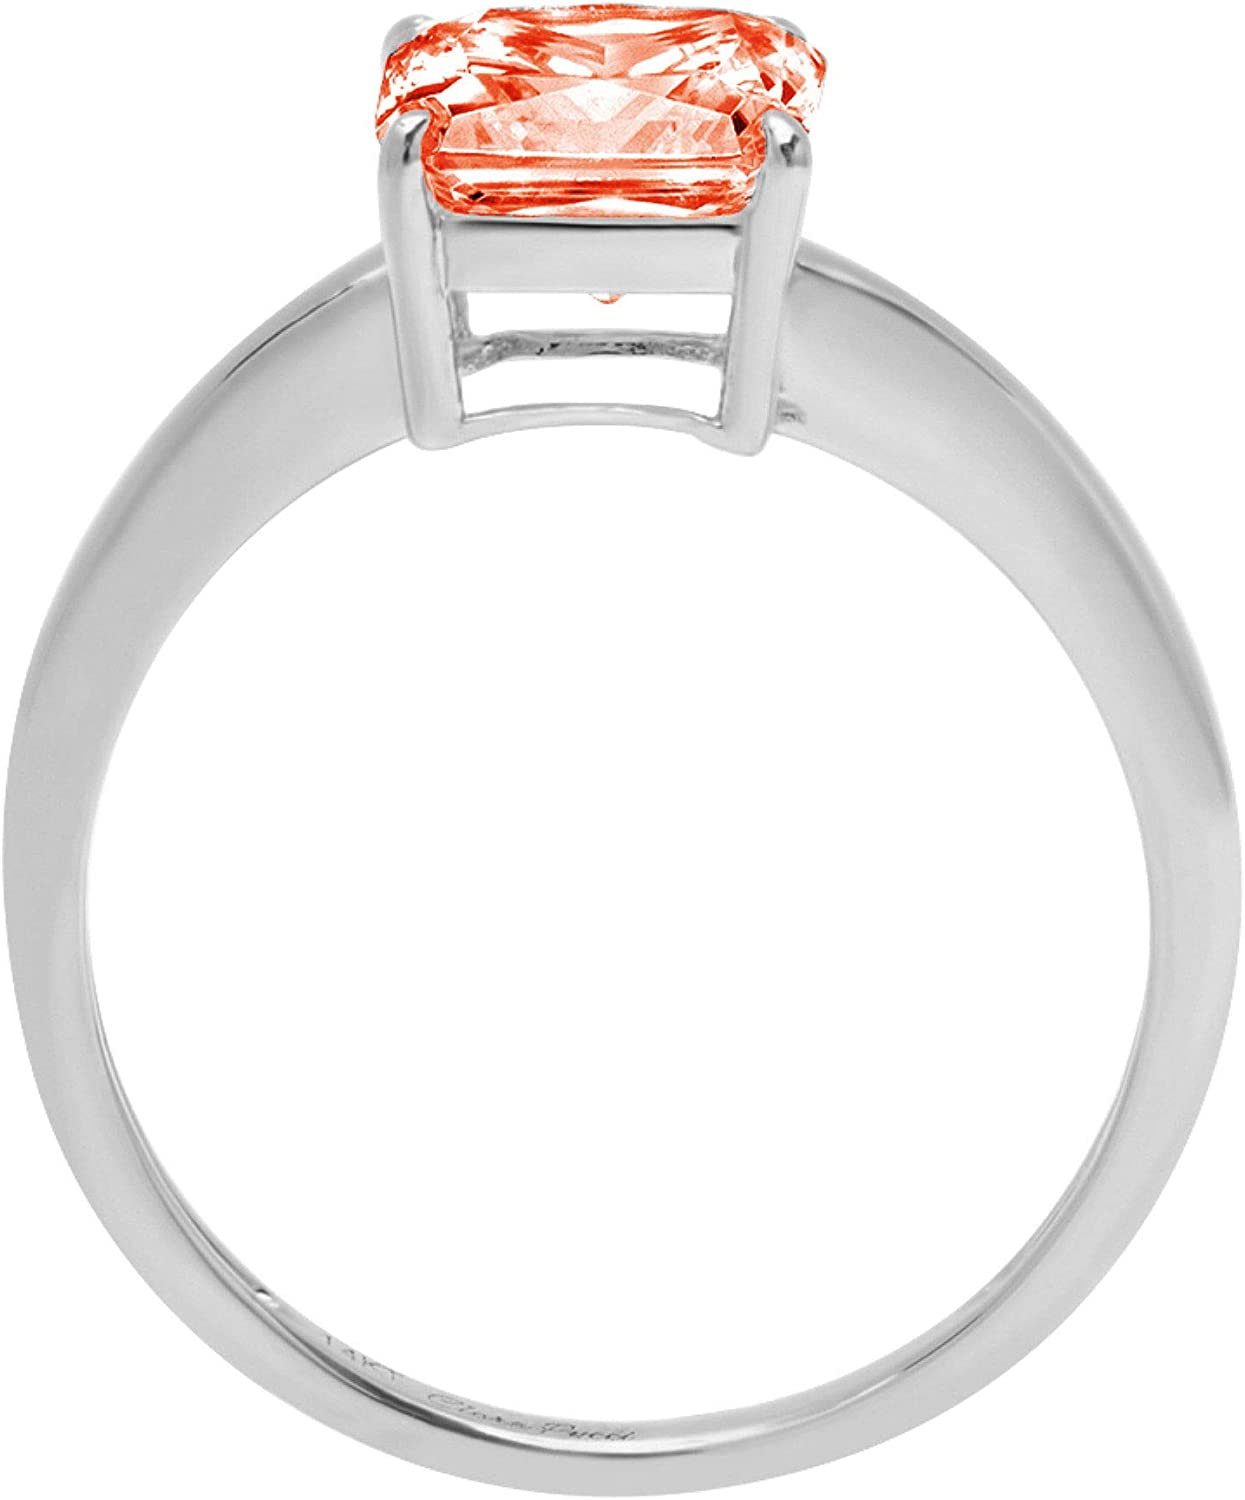 2.4ct Brilliant Asscher Cut Solitaire Stunning Genuine Red Simulated Diamond Cubic Zirconia Ideal VVS1 D 4-Prong Engagement Wedding Bridal Promise Anniversary Ring Solid 14k White Gold for Women